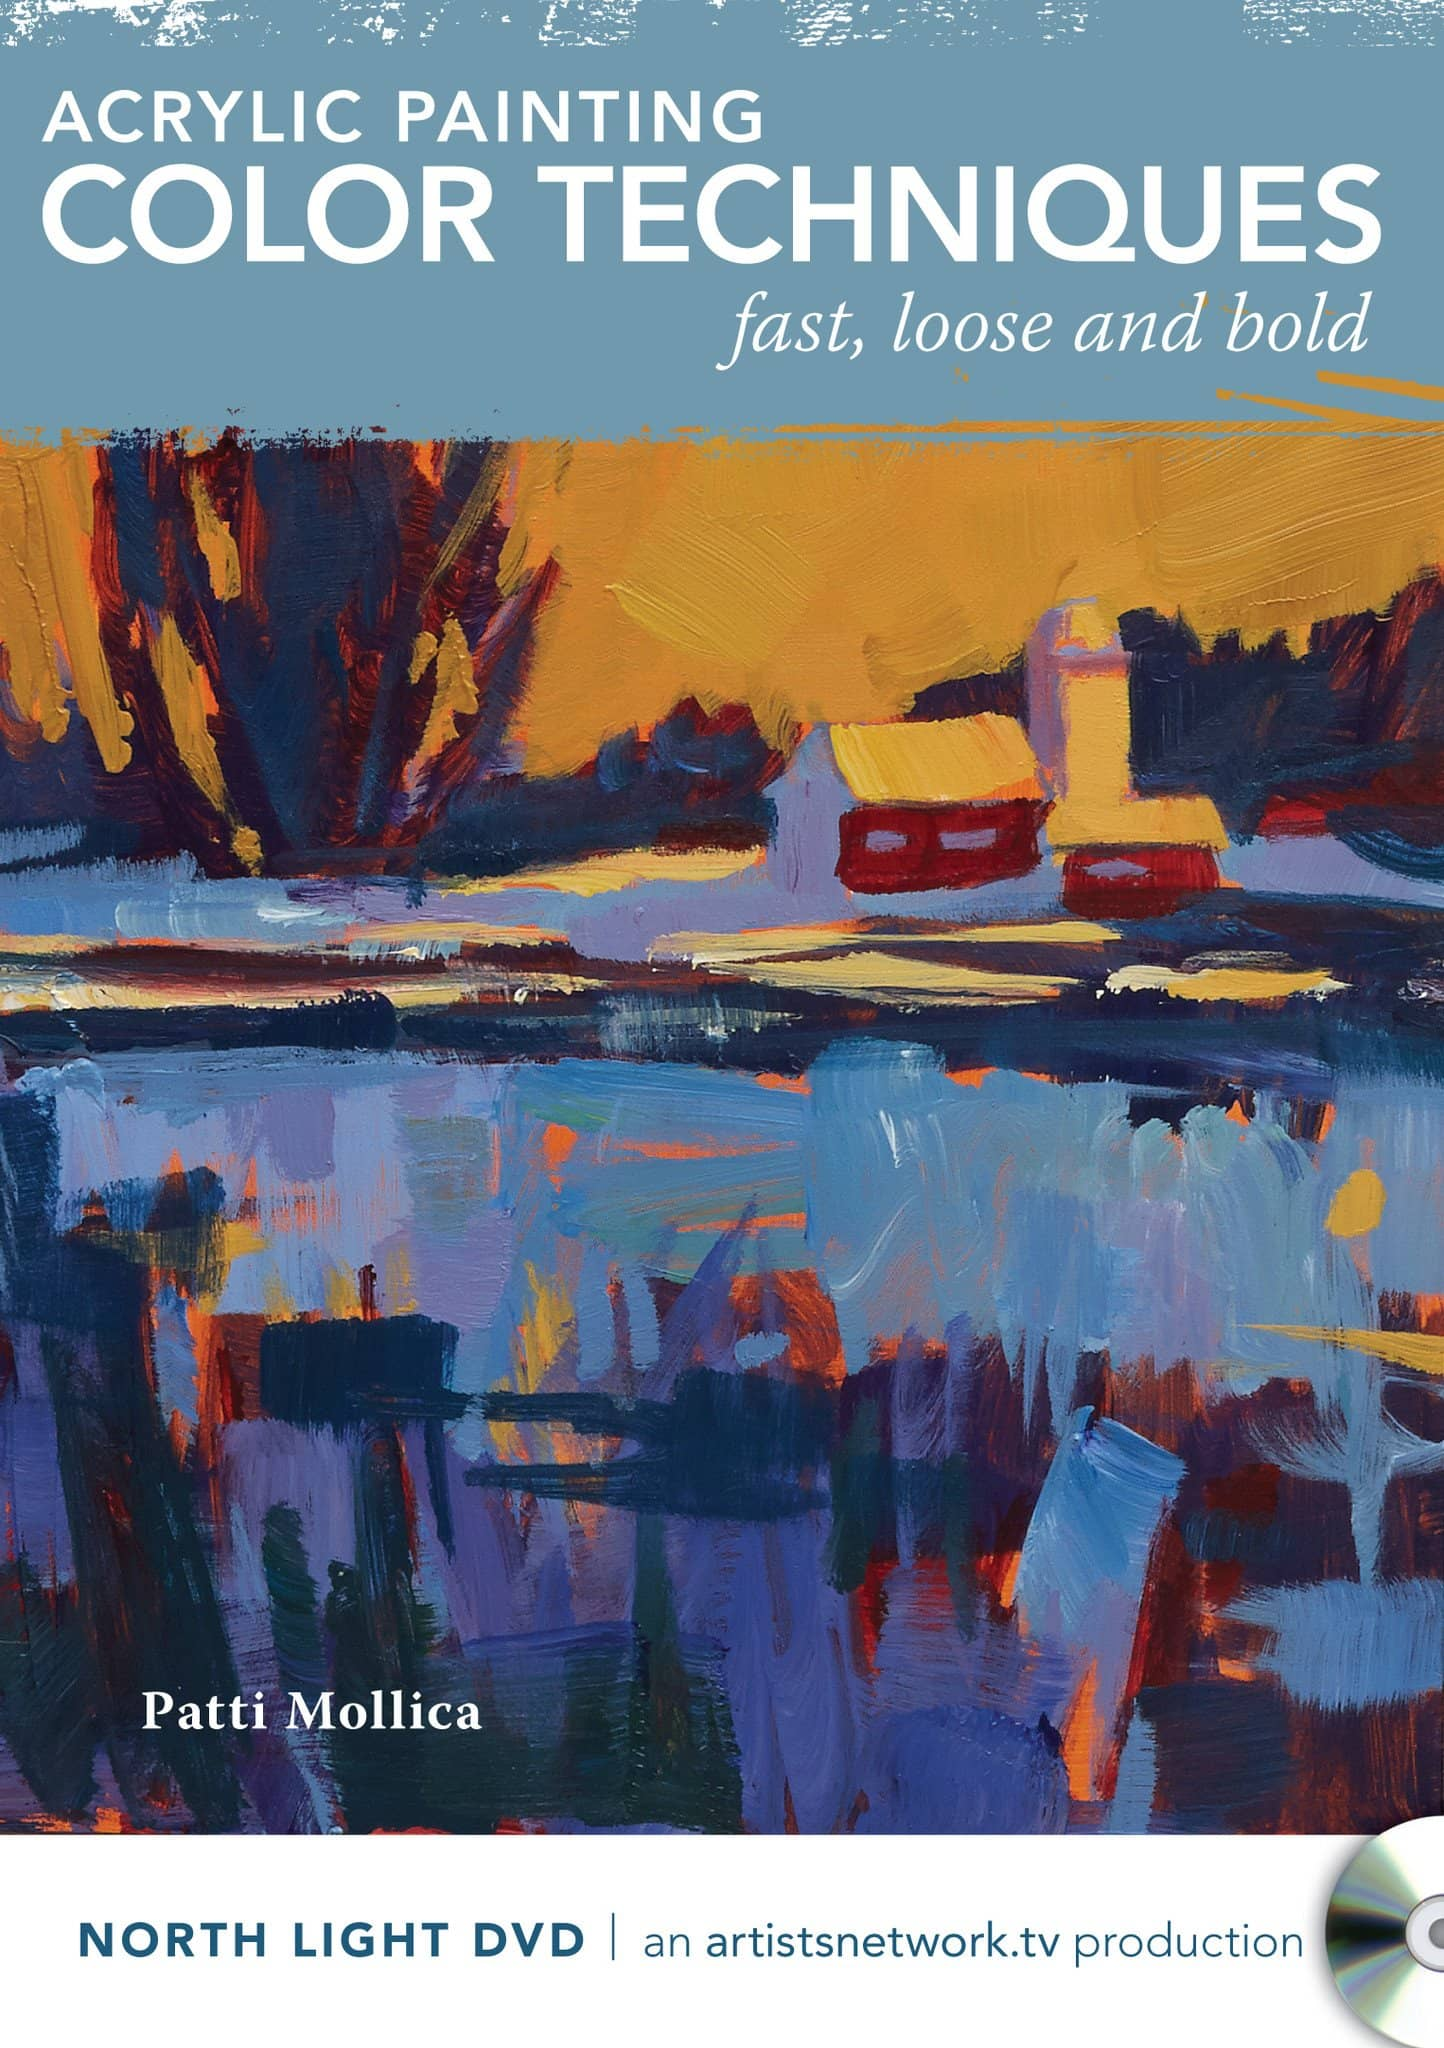 Acrylic Painting Color Techniques Fast Loose and Bold with Patti Mollica